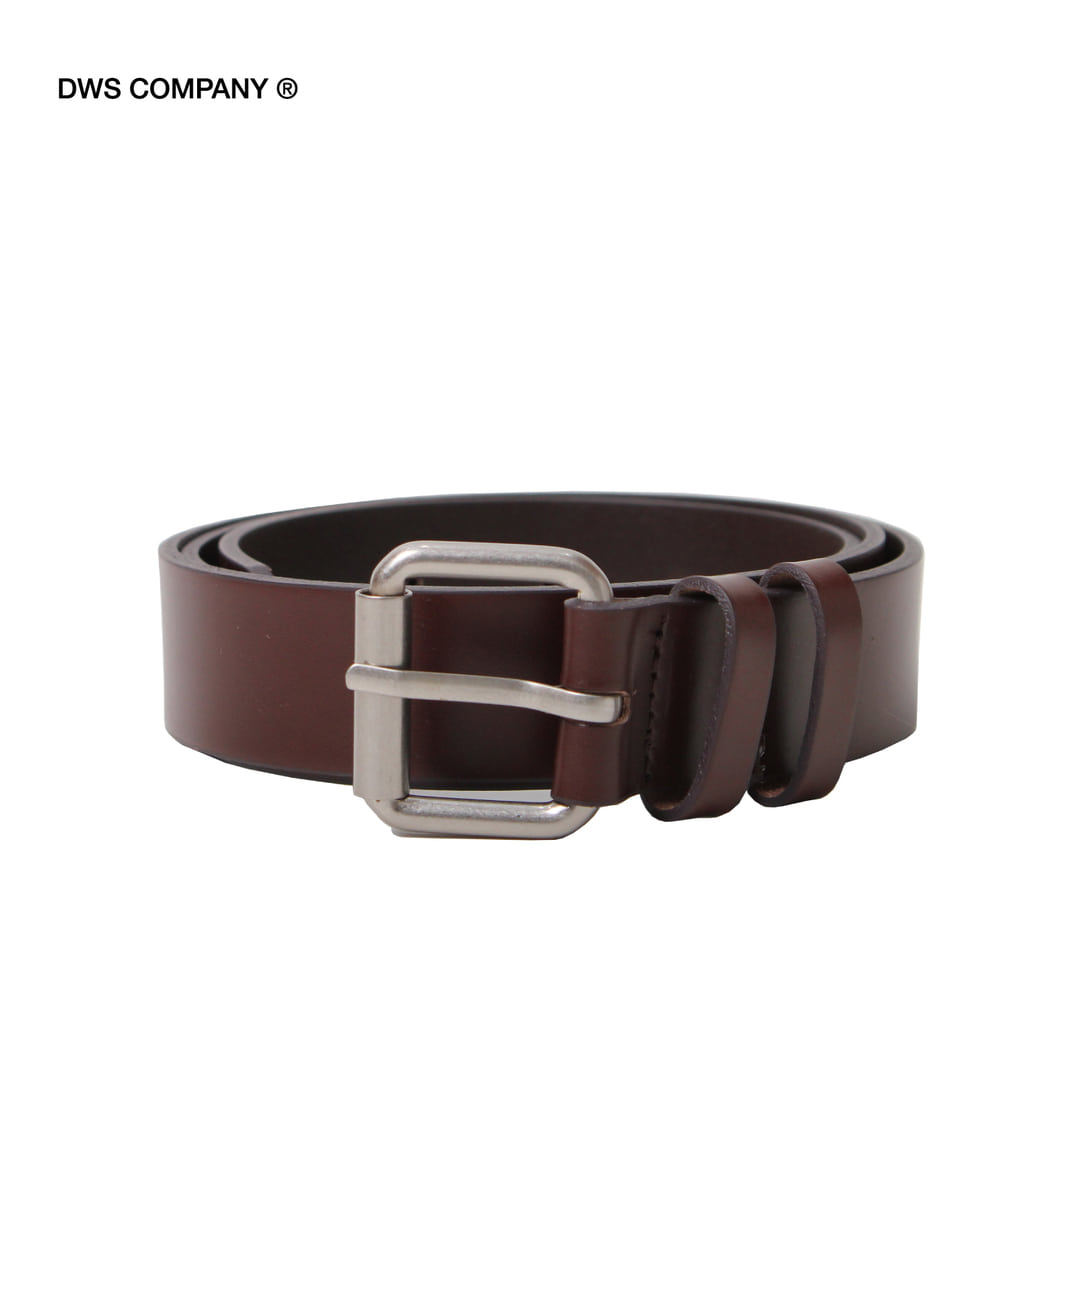 DWS ROLLING LEATHER BELT(DARK BROWN)